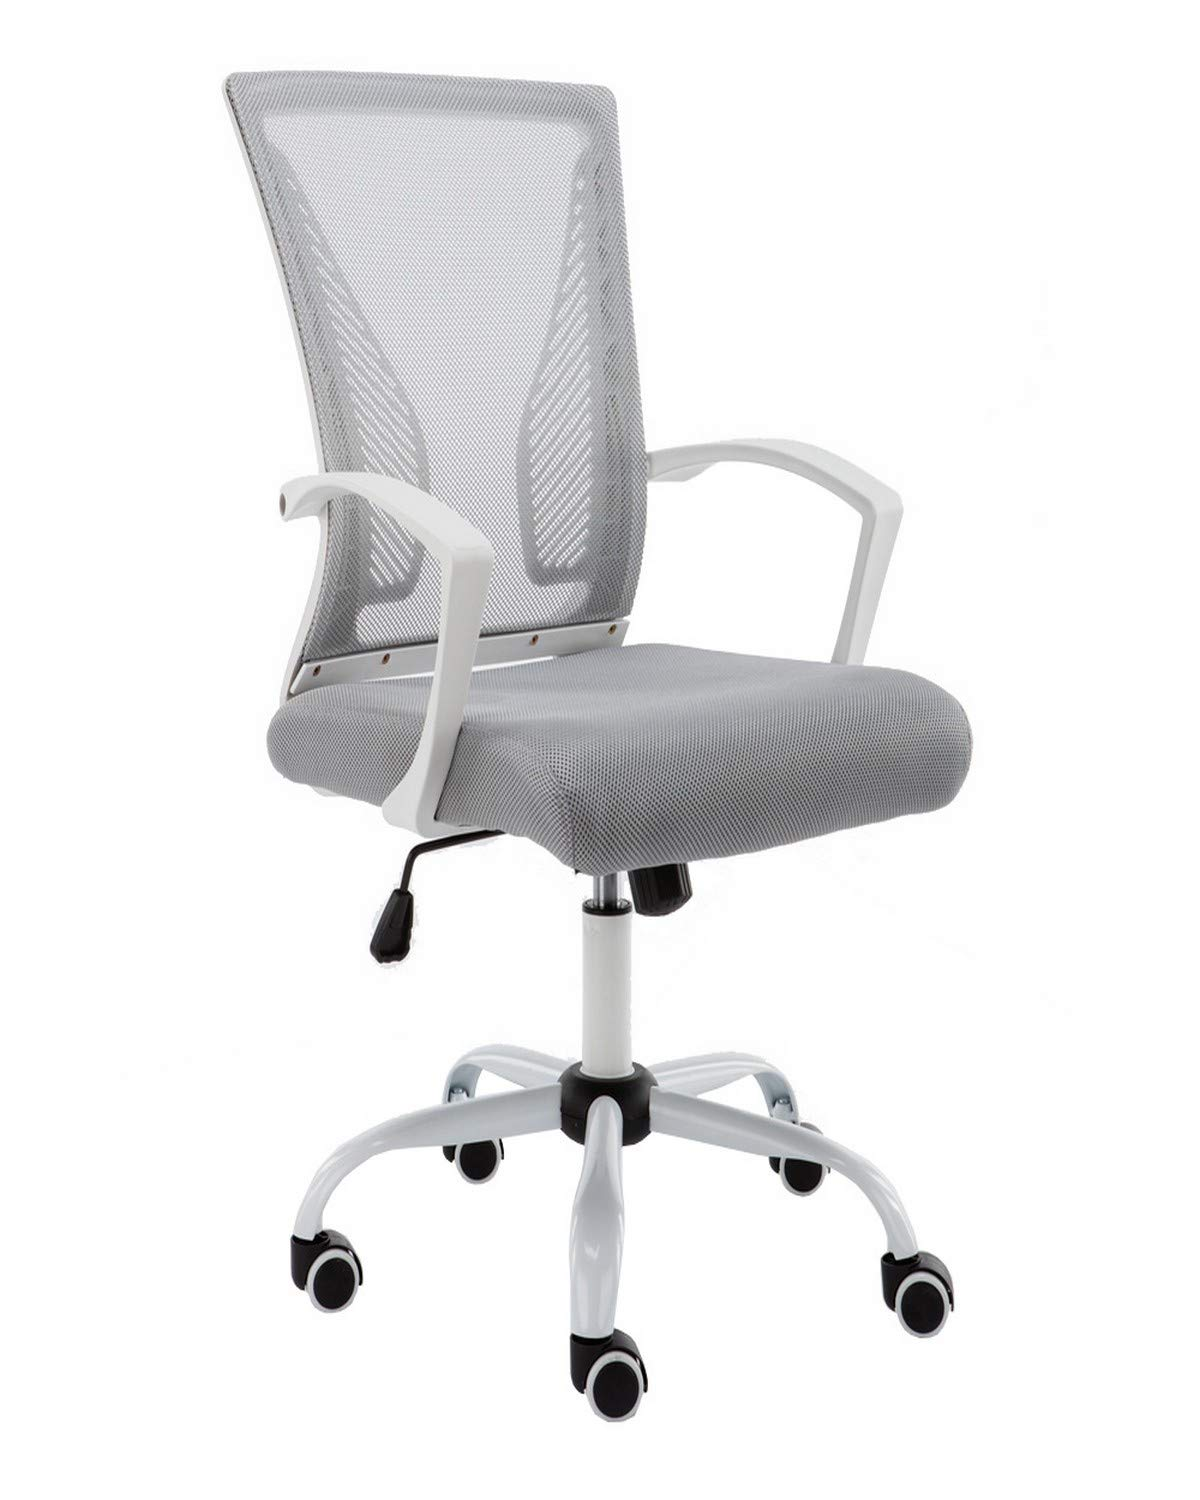 Miraculous Modern Home Zuna Mid Back Office Chair White Gray Caraccident5 Cool Chair Designs And Ideas Caraccident5Info